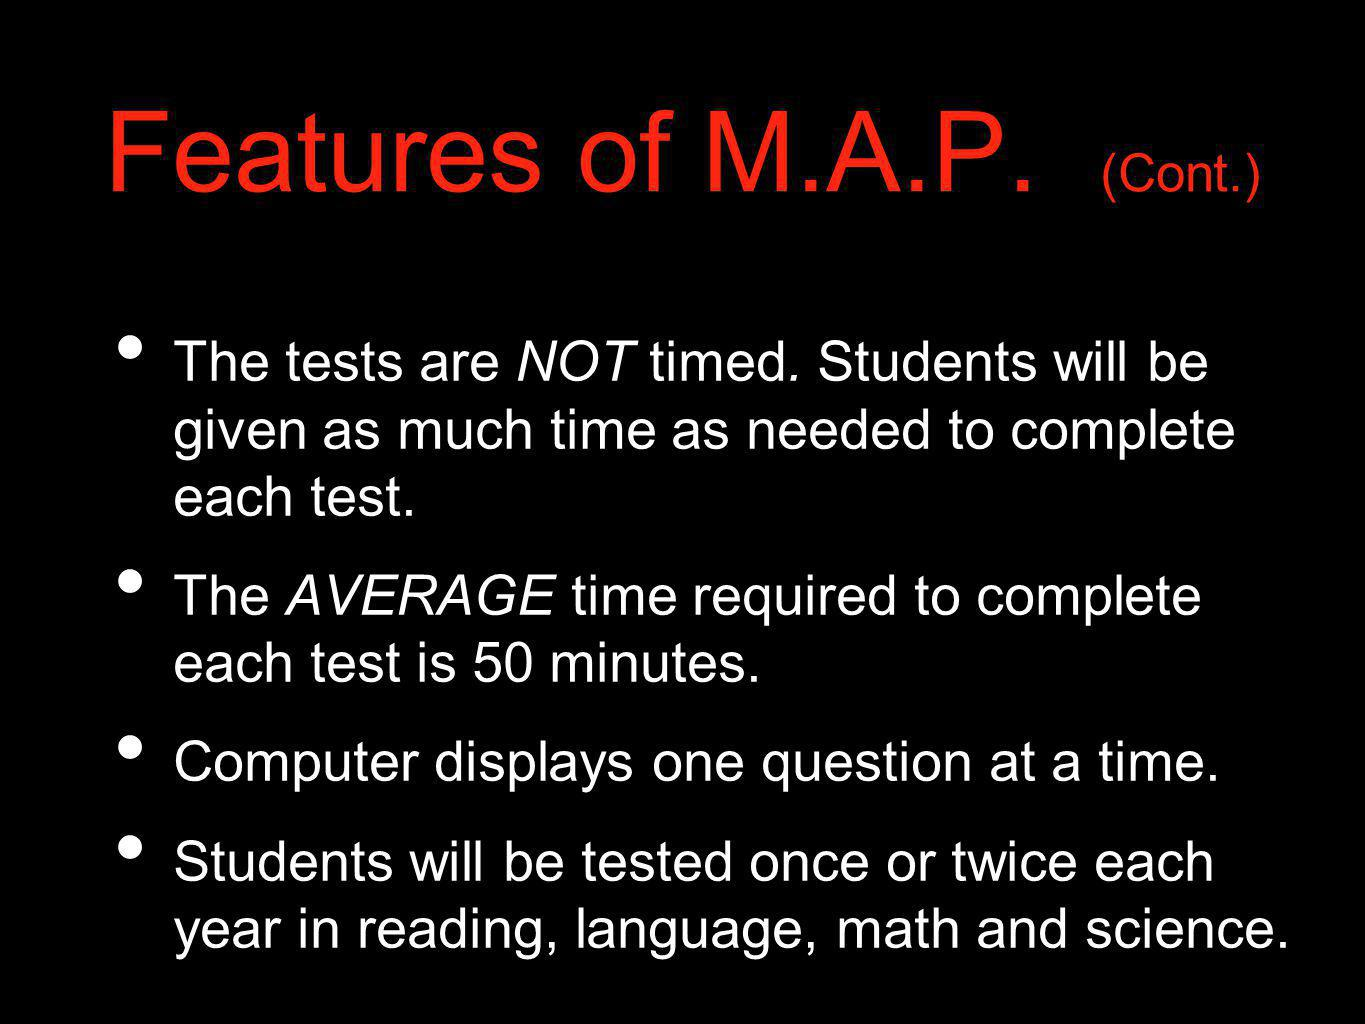 Features of M.A.P. (Cont.) The tests are NOT timed. Students will be given as much time as needed to complete each test. The AVERAGE time required to